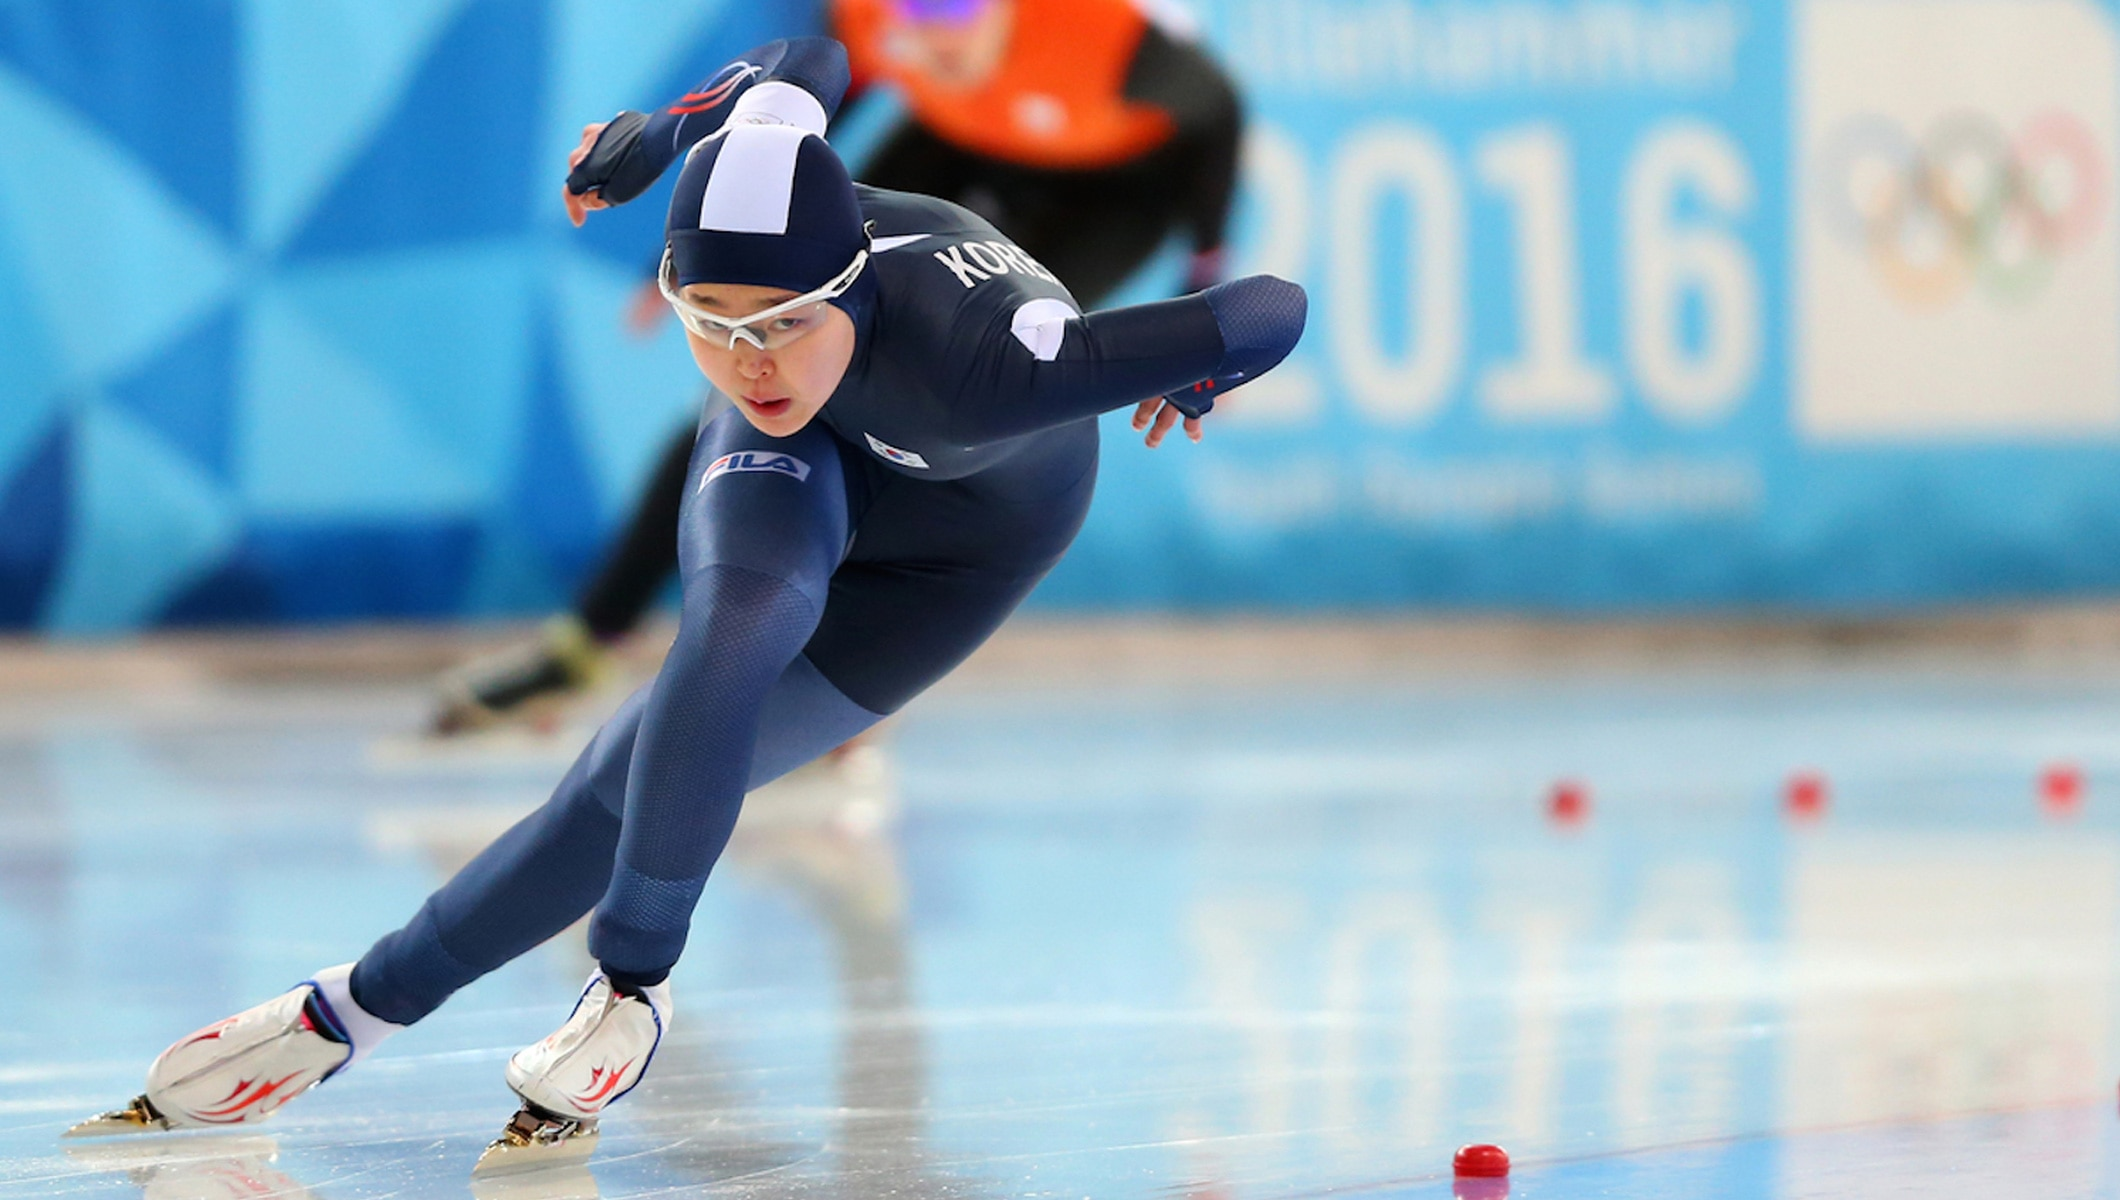 'Little Lee' signals superstar qualities with speed skating gold